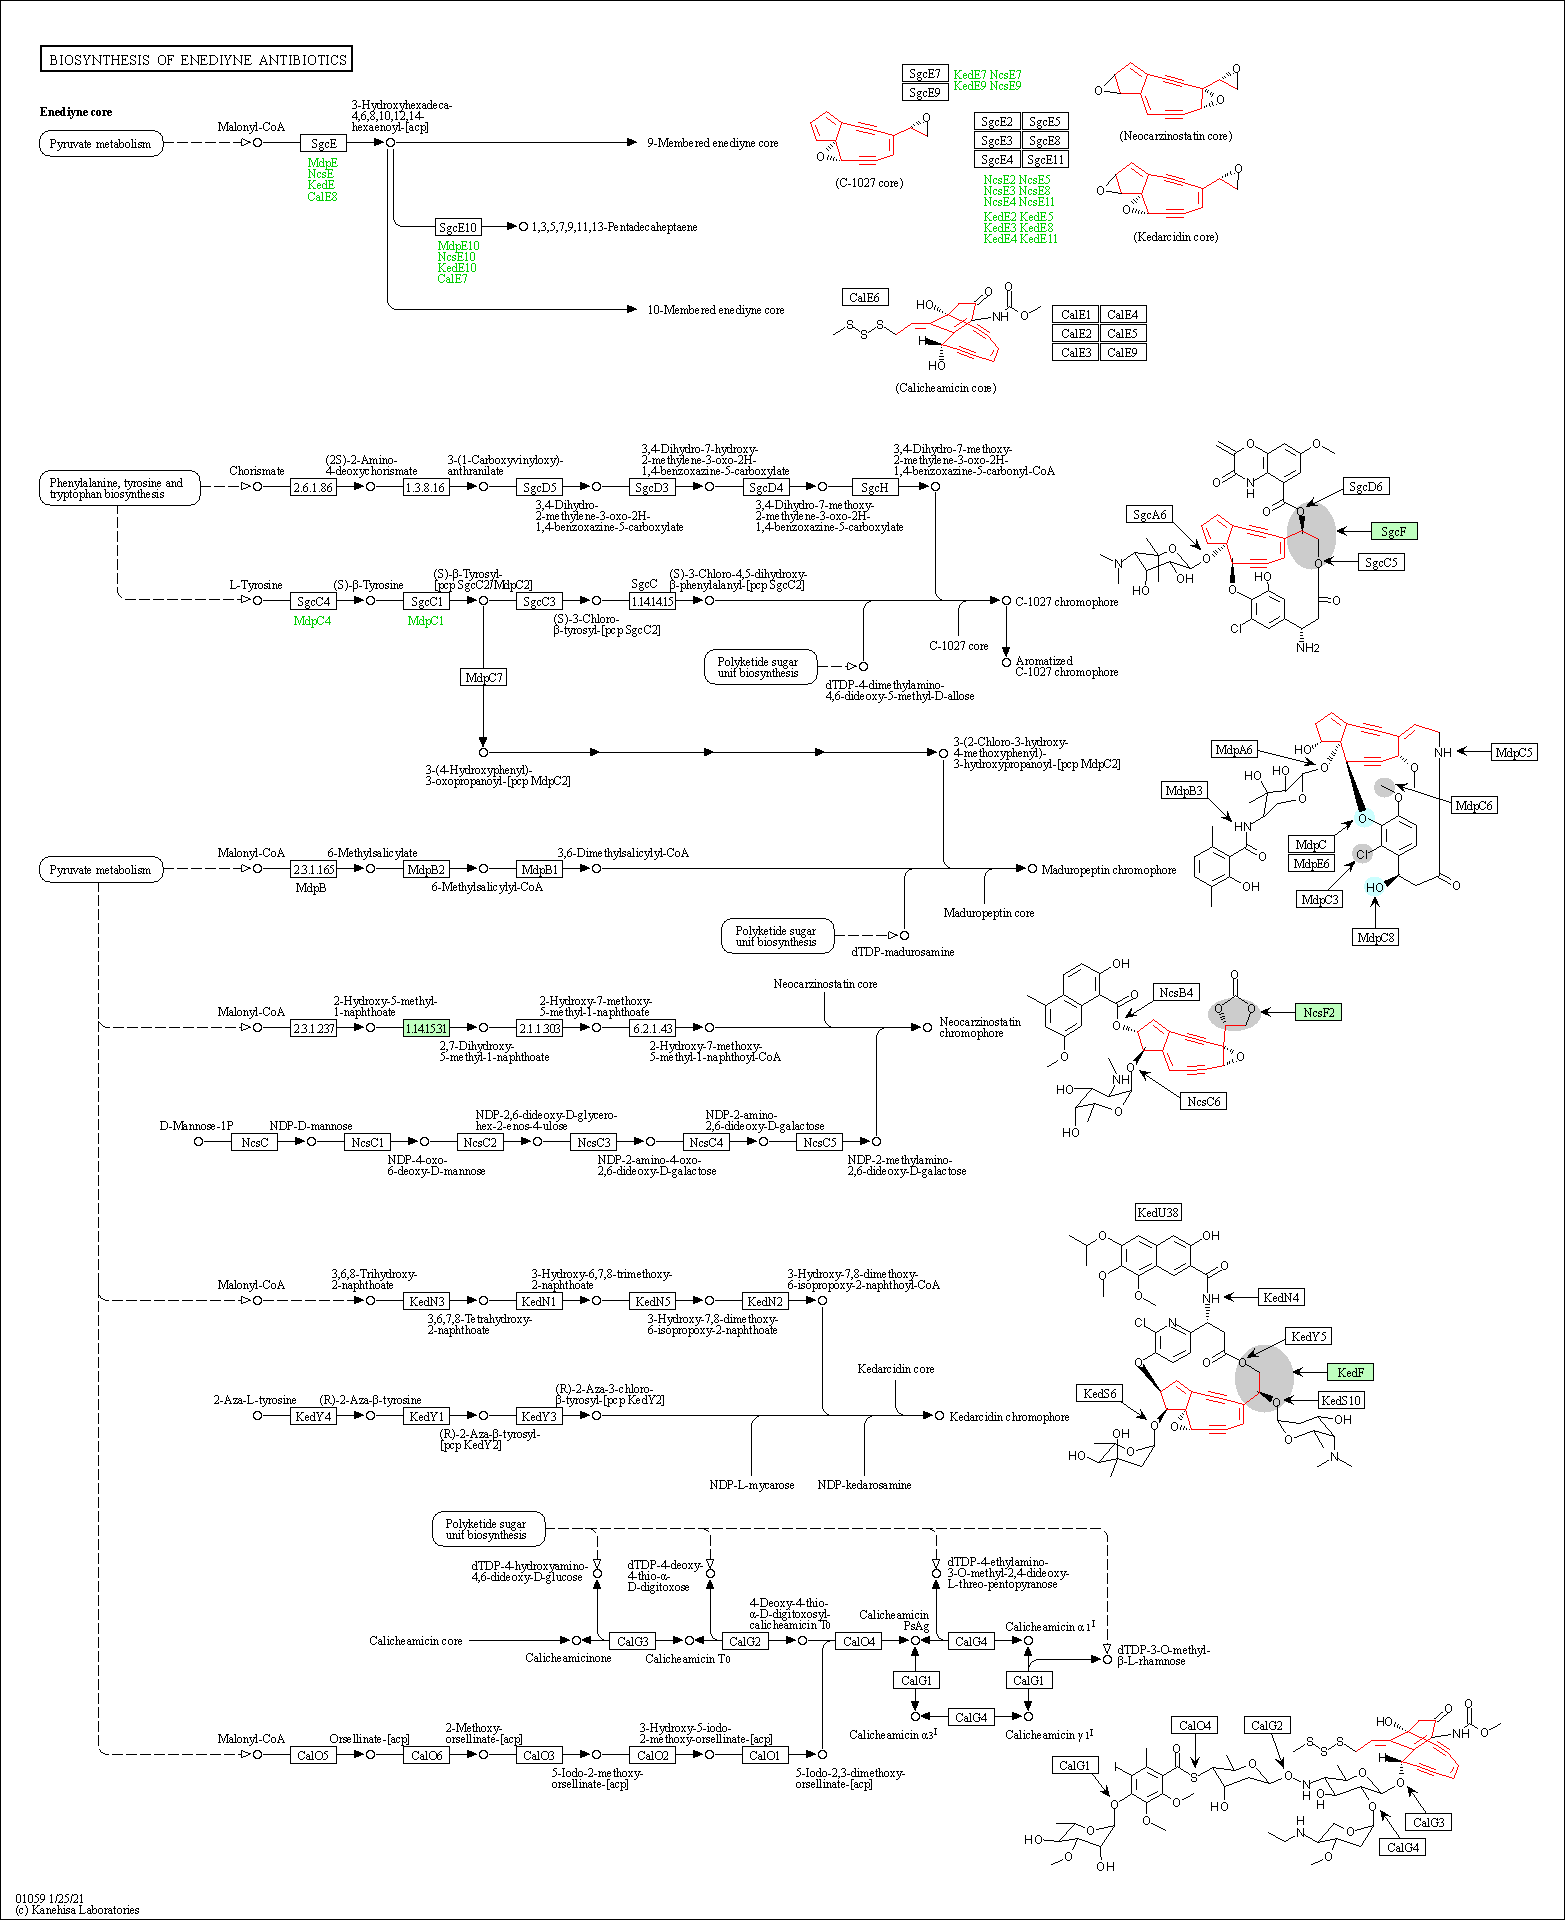 KEGG PATHWAY: Biosynthesis of enediyne antibiotics